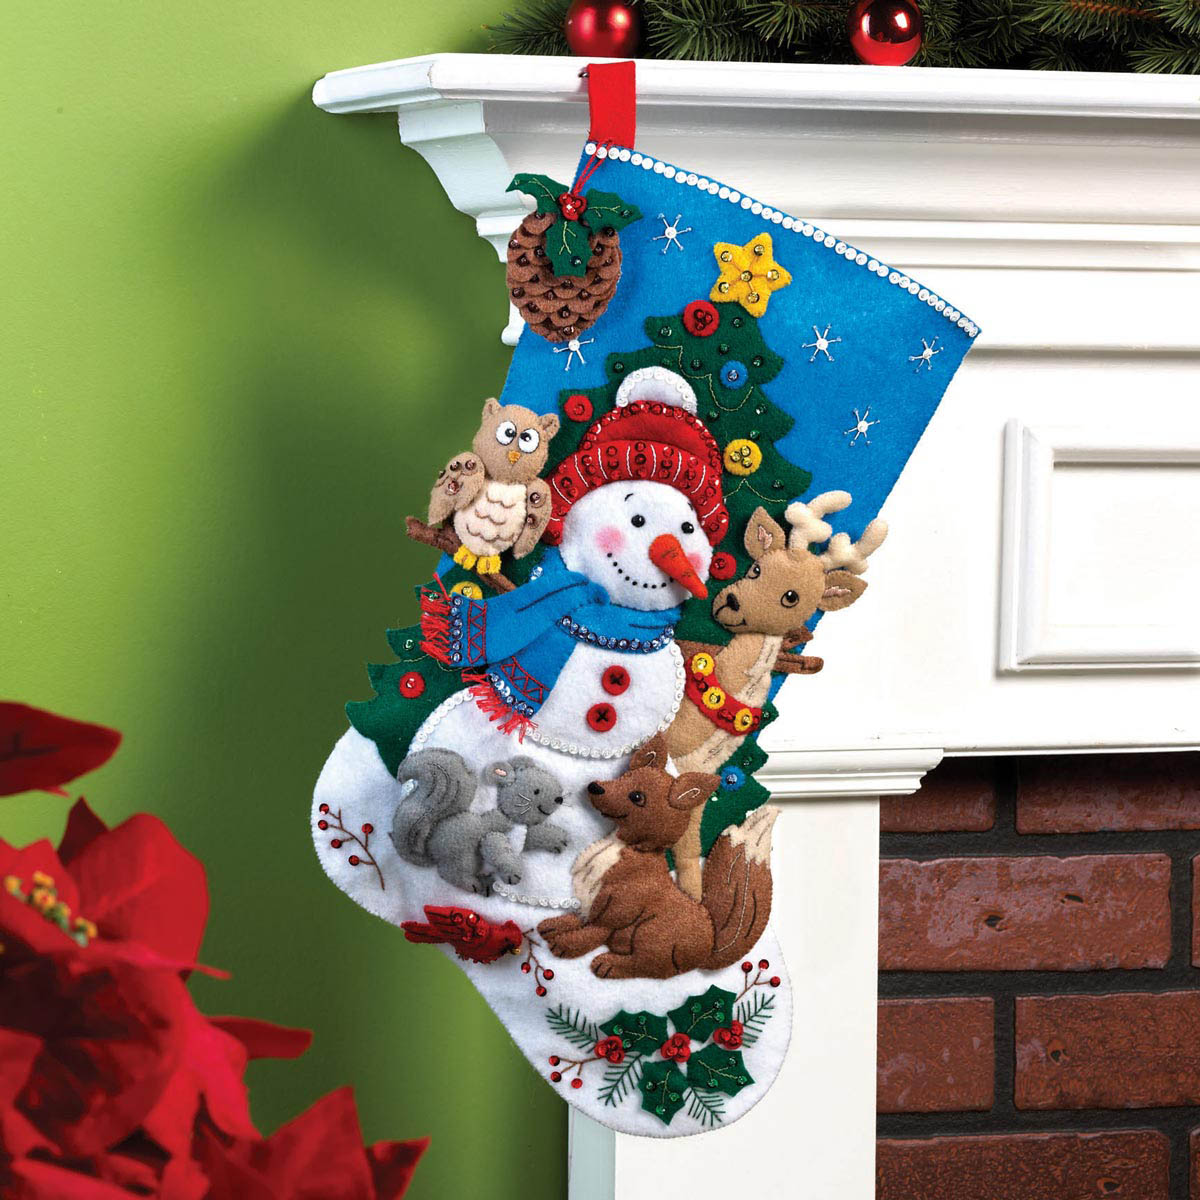 Bucilla ® Seasonal - Felt - Stocking Kits - Woodland Snowman